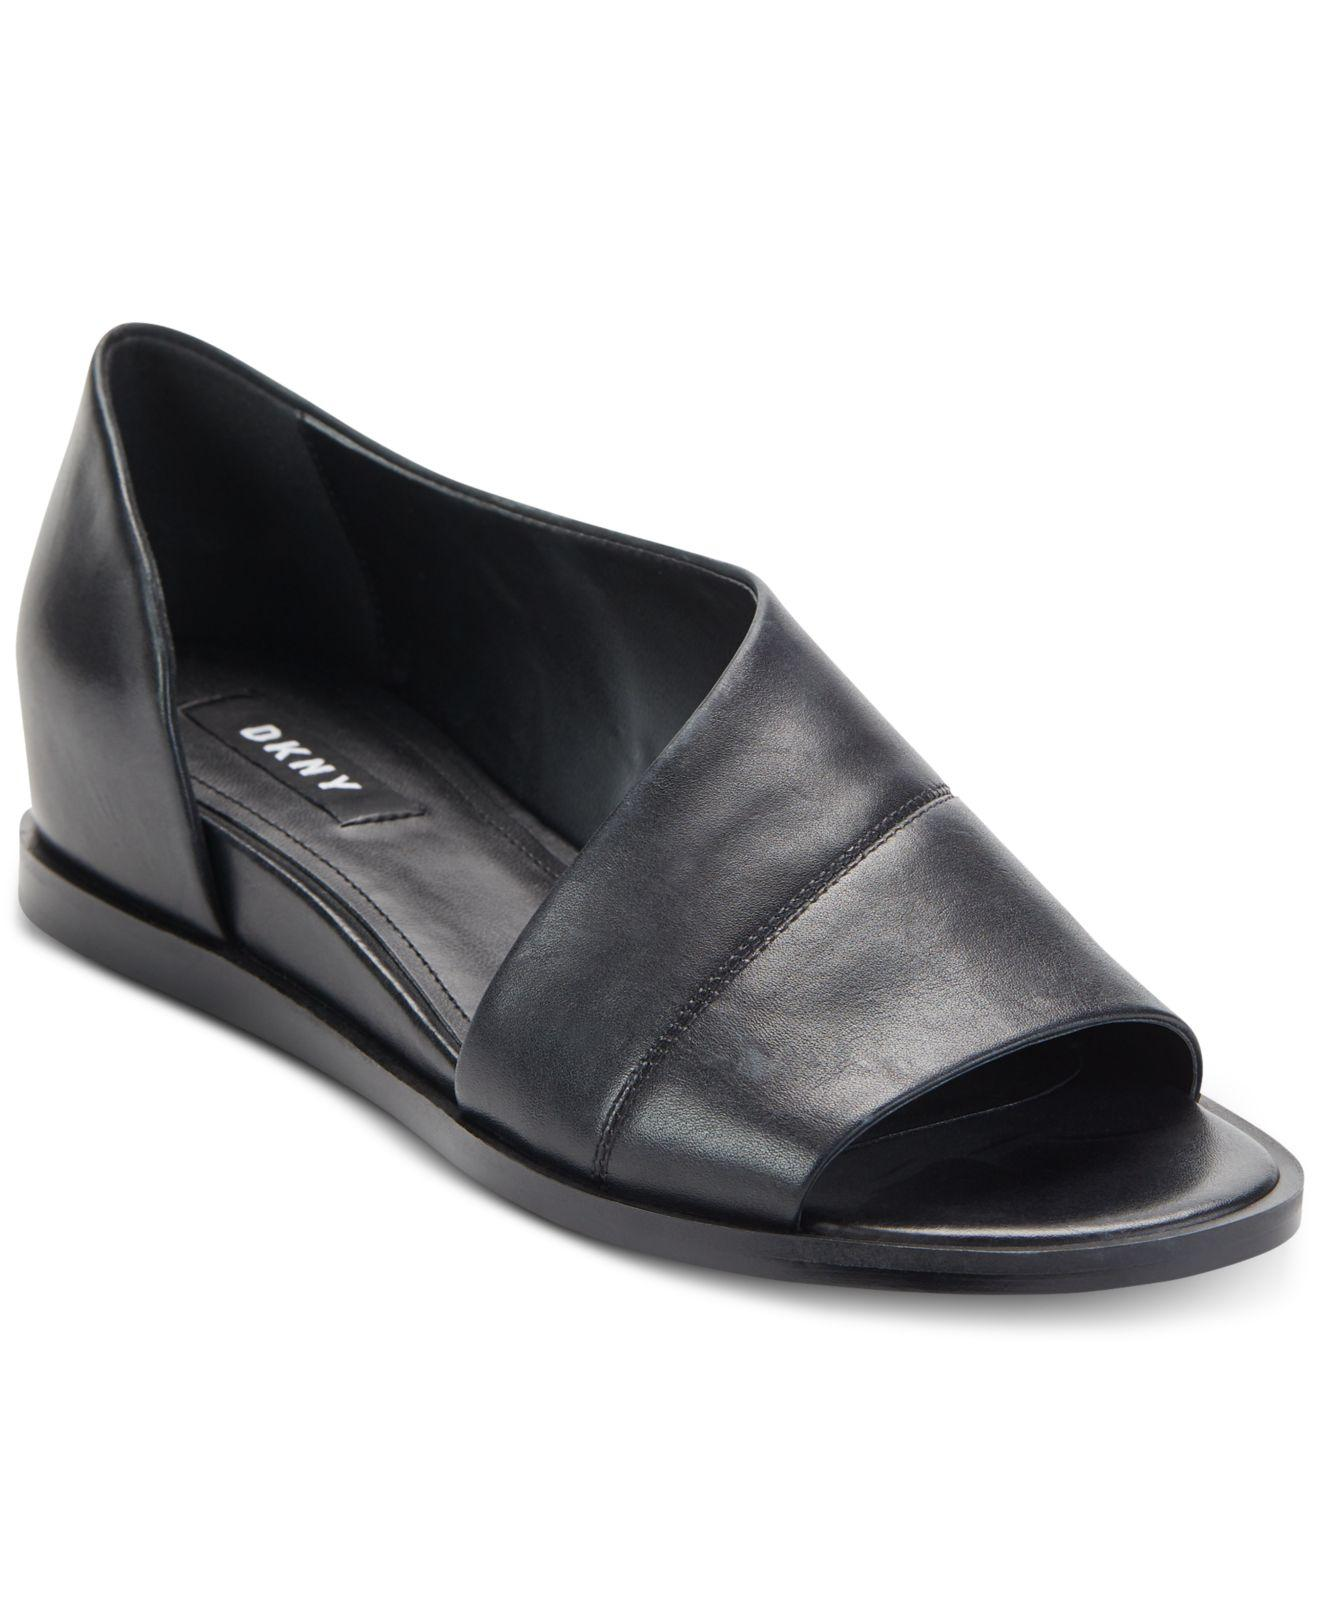 8f85b3cdb DKNY Dya Flats, Created For Macy's in Black - Lyst